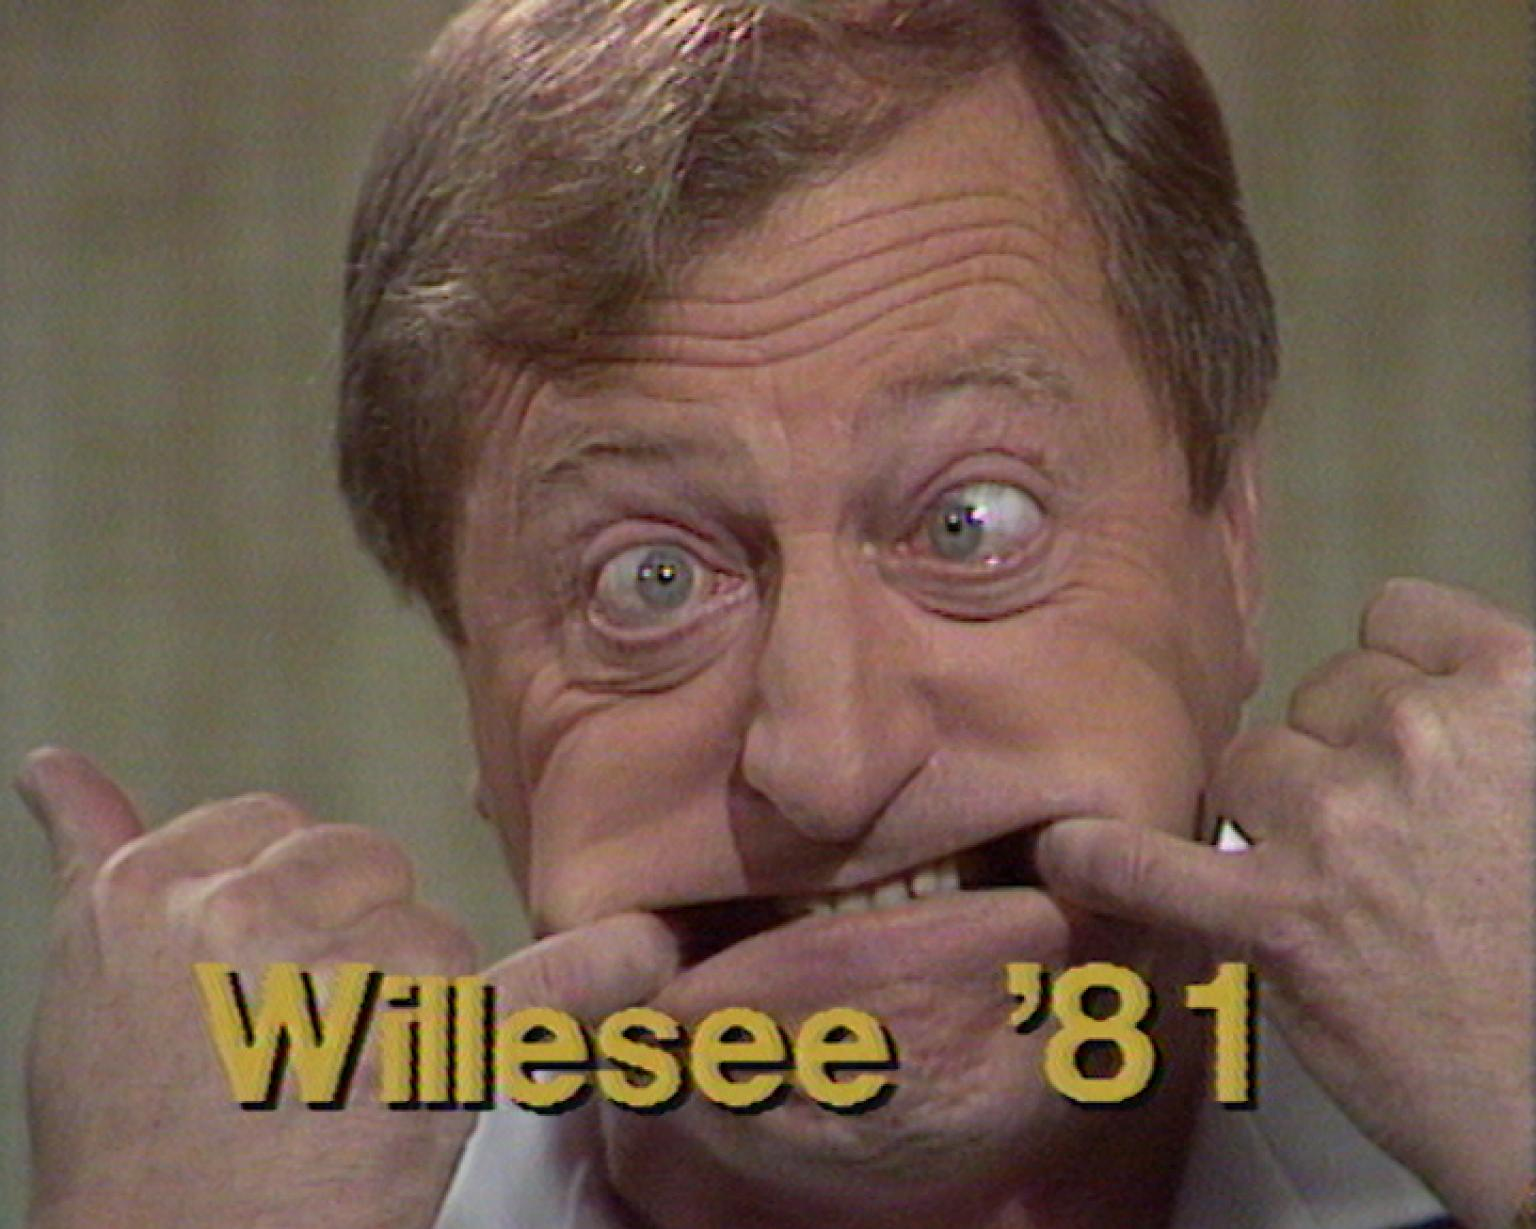 Graham Kennedy with fingers pulling his mouth to the side and the words Willesee '81 across the screen